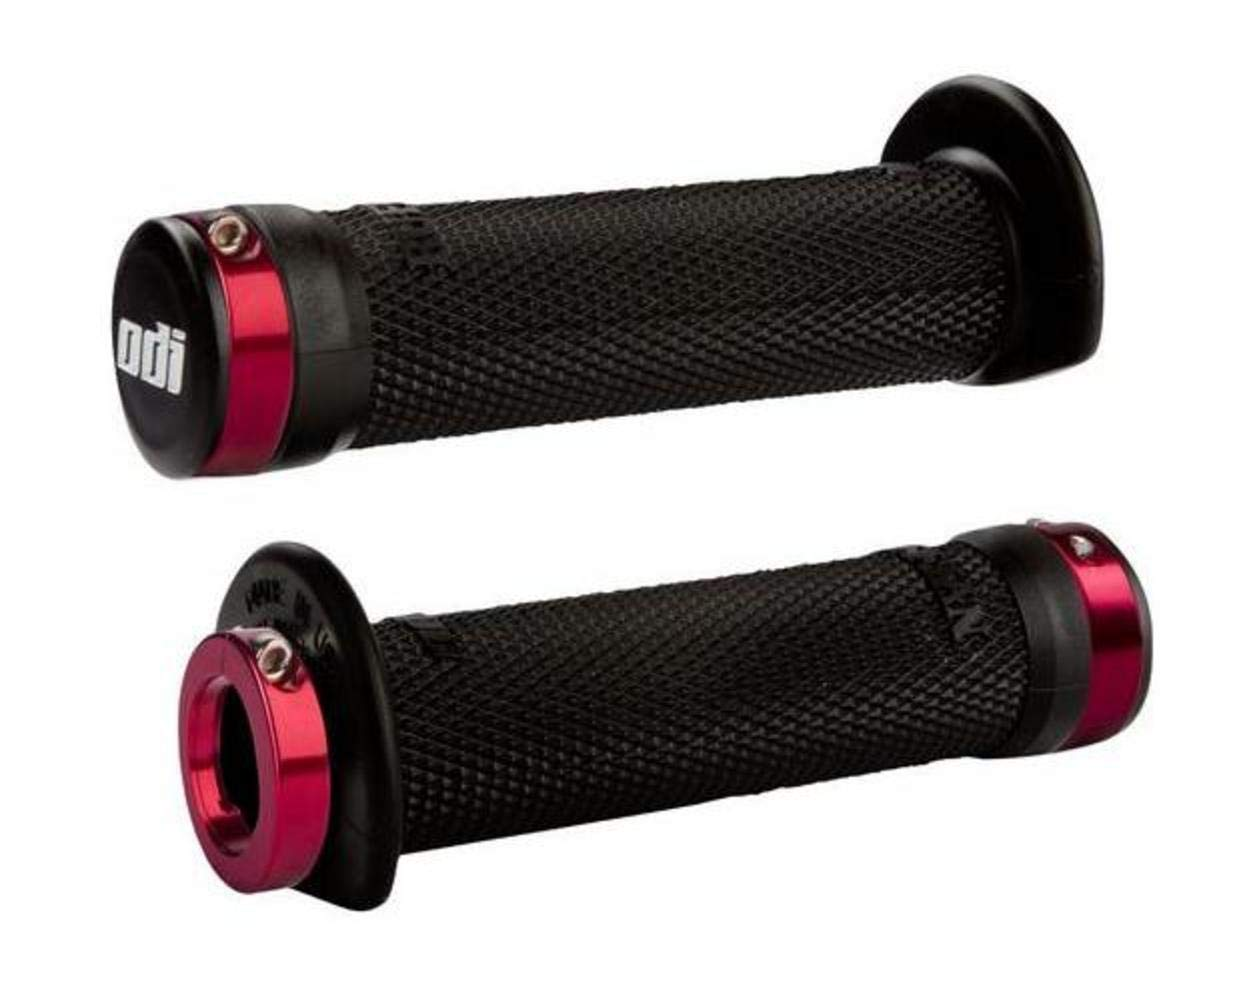 ODI J31RFB-R 120mm Ruffian ATV Lock-On Grips - Red Clamp